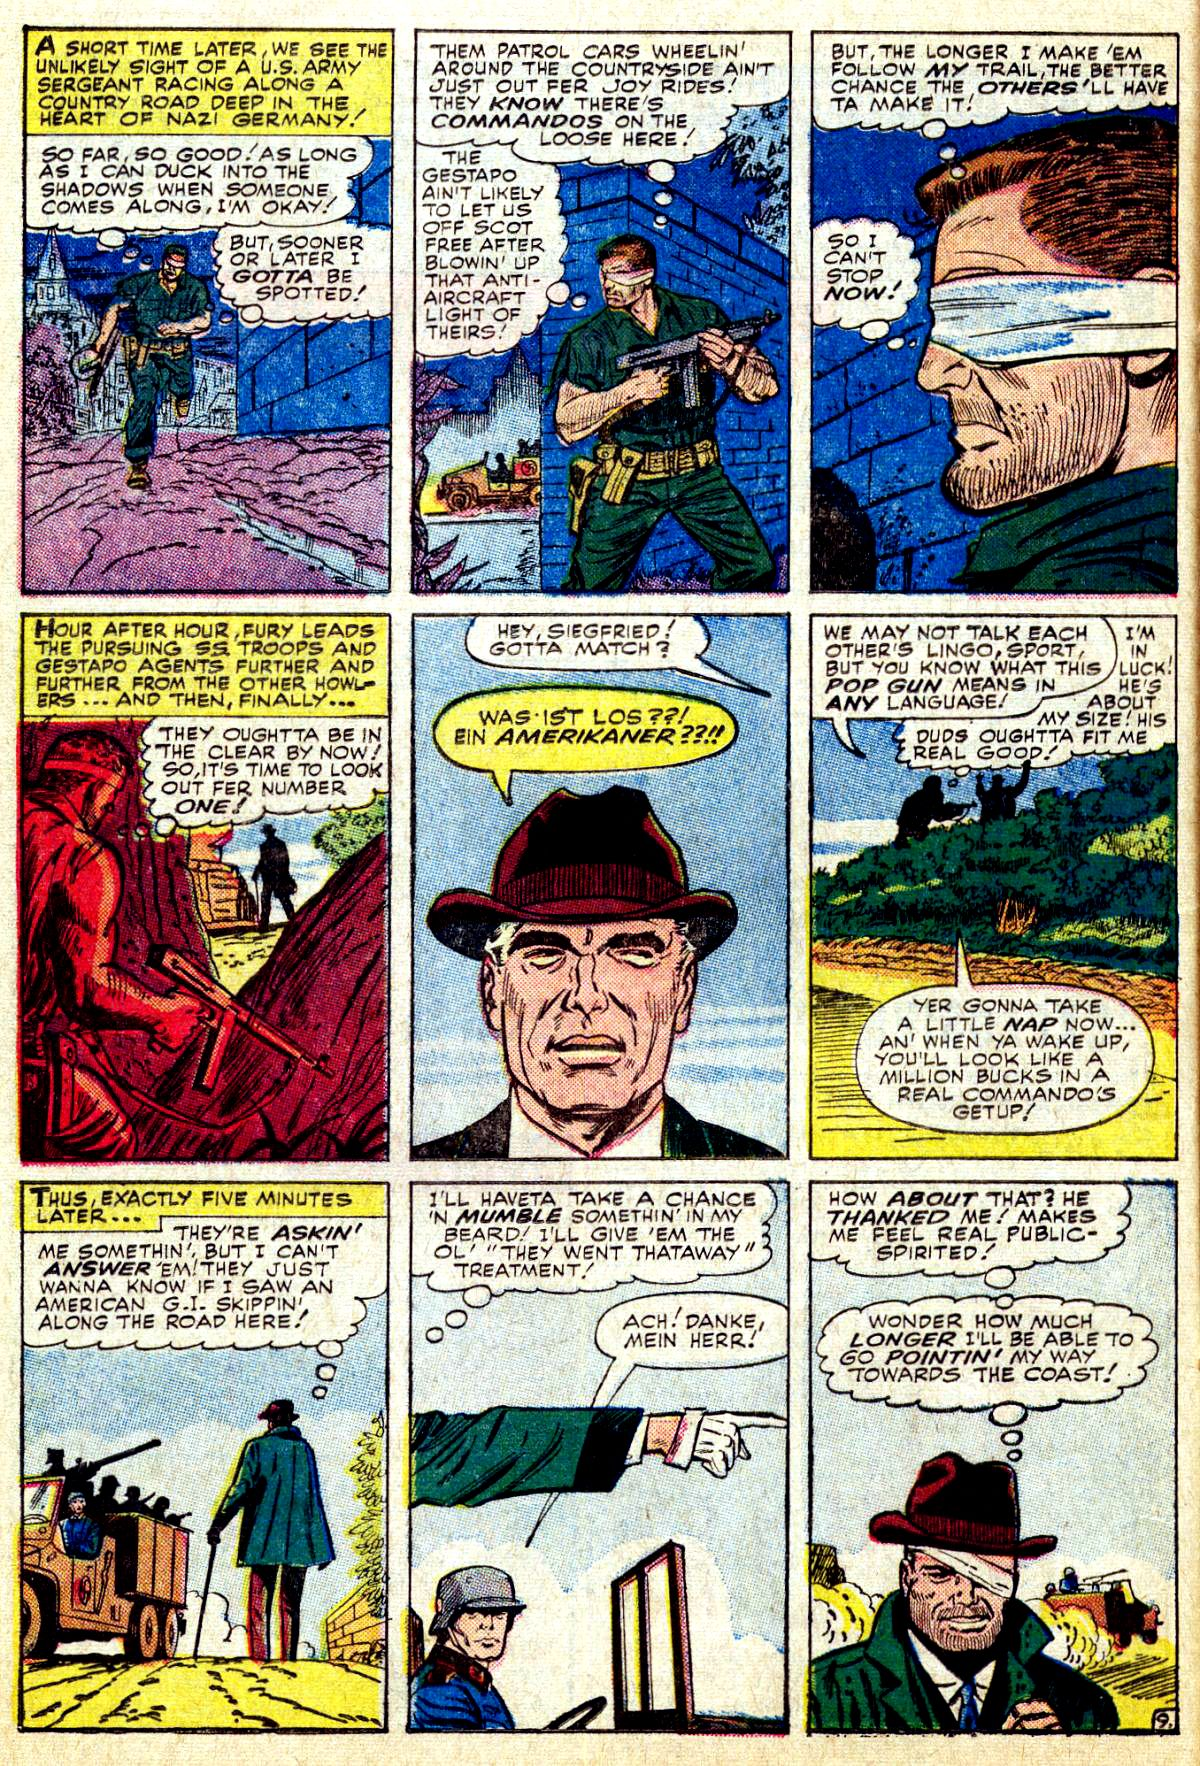 Read online Sgt. Fury comic -  Issue #27 - 14